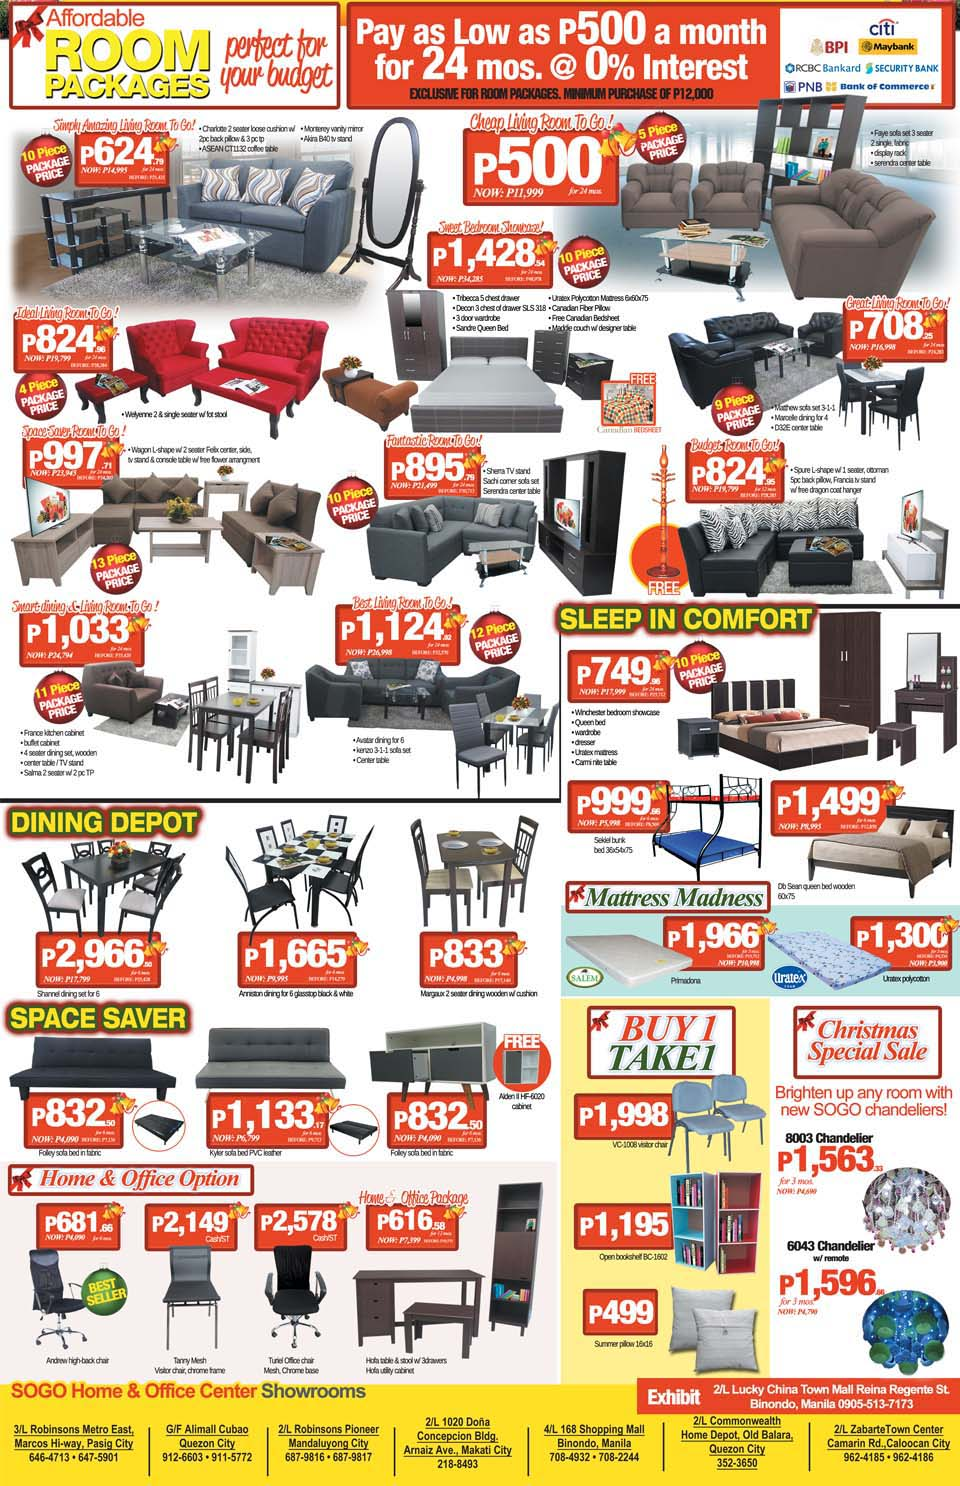 SOGO Home   Office Center Perfect Holiday Sale. SOGO Home   Office Center Perfect Holiday Sale   EDnything